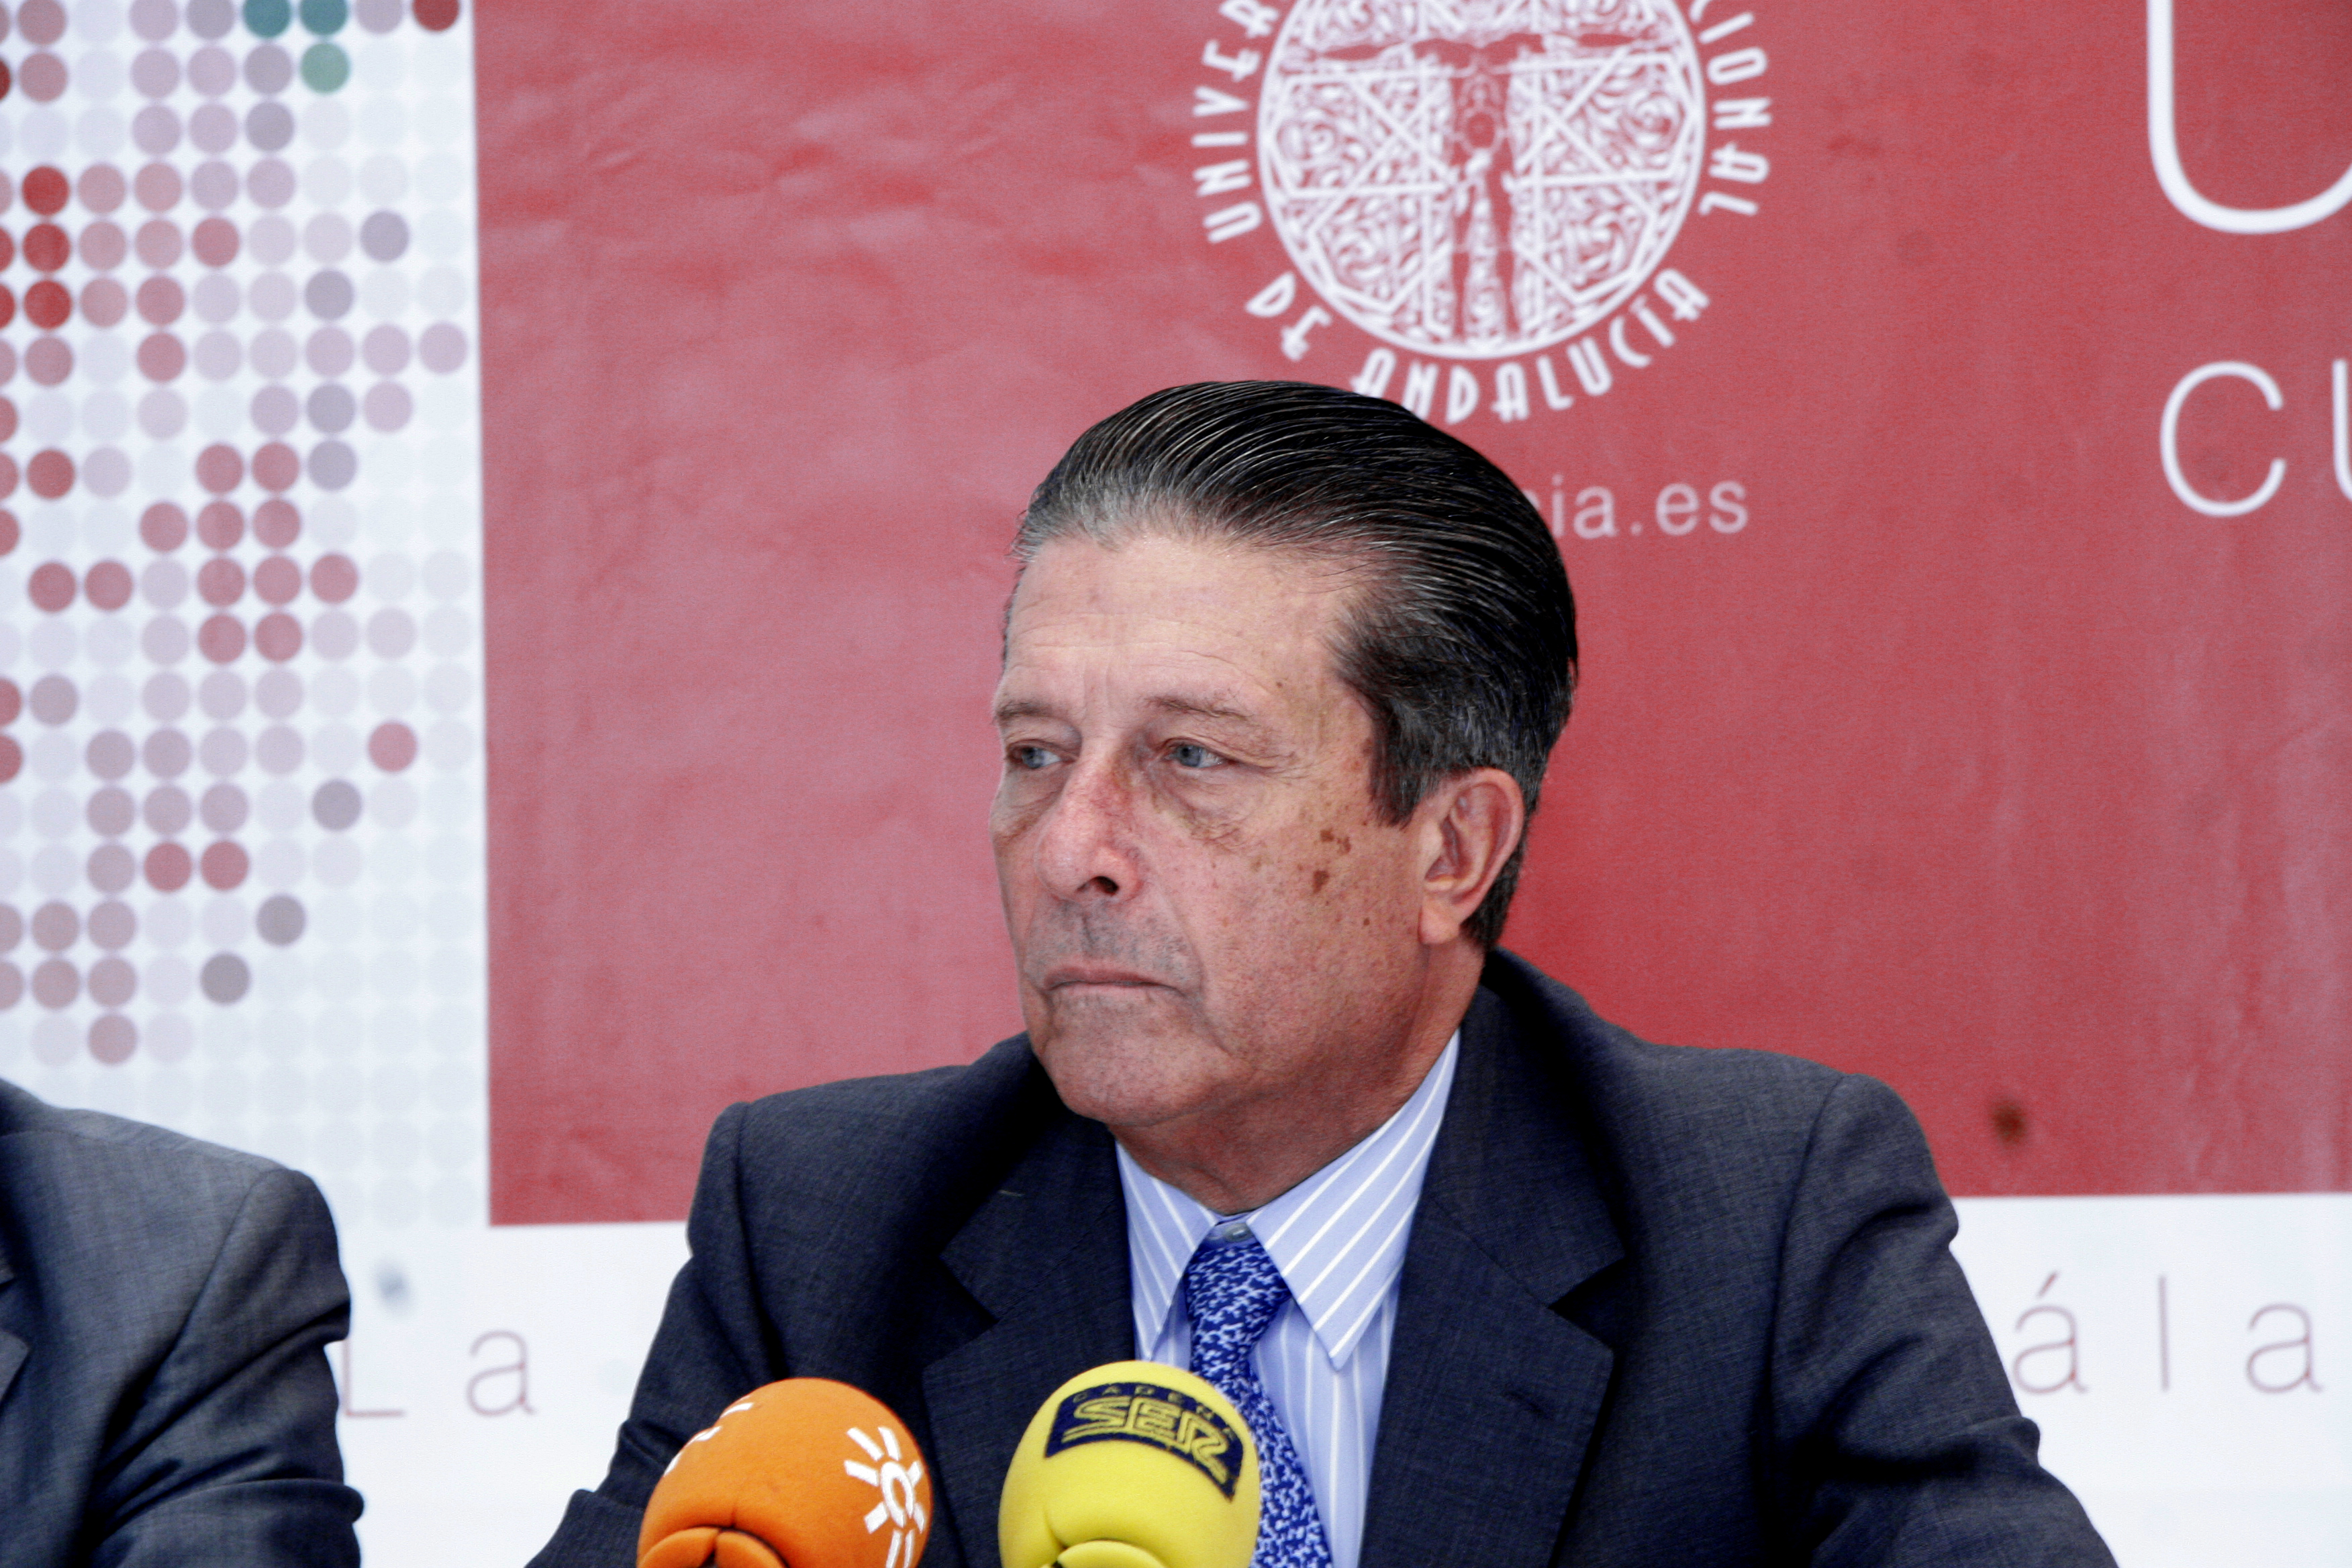 Federico Mayor Zaragoza. Photo: International University of Andalusia